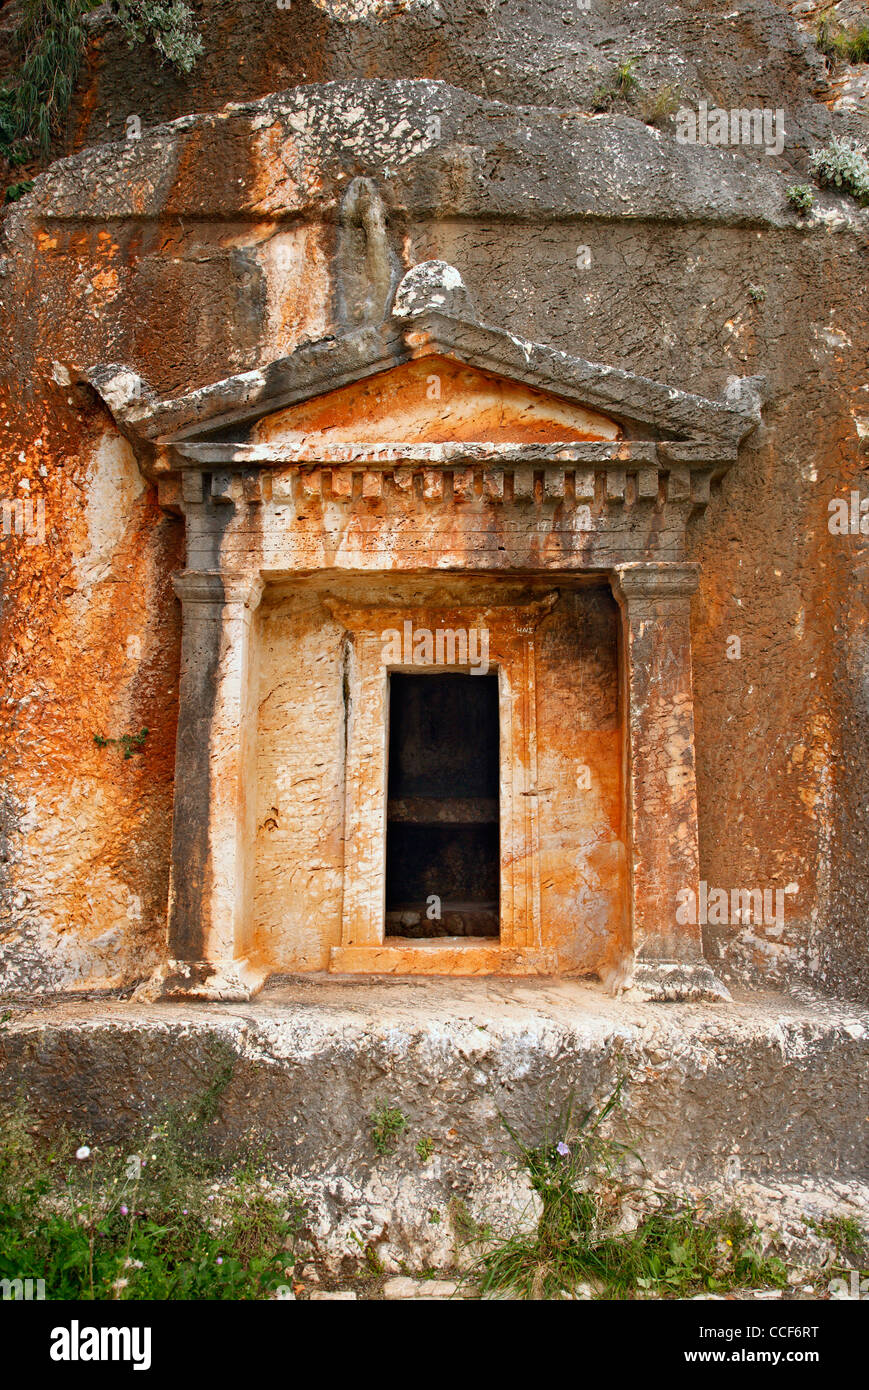 The Lycian tomb, with its Doric facade in Kastellorizo island, Dodecanese, Greece. Stock Photo